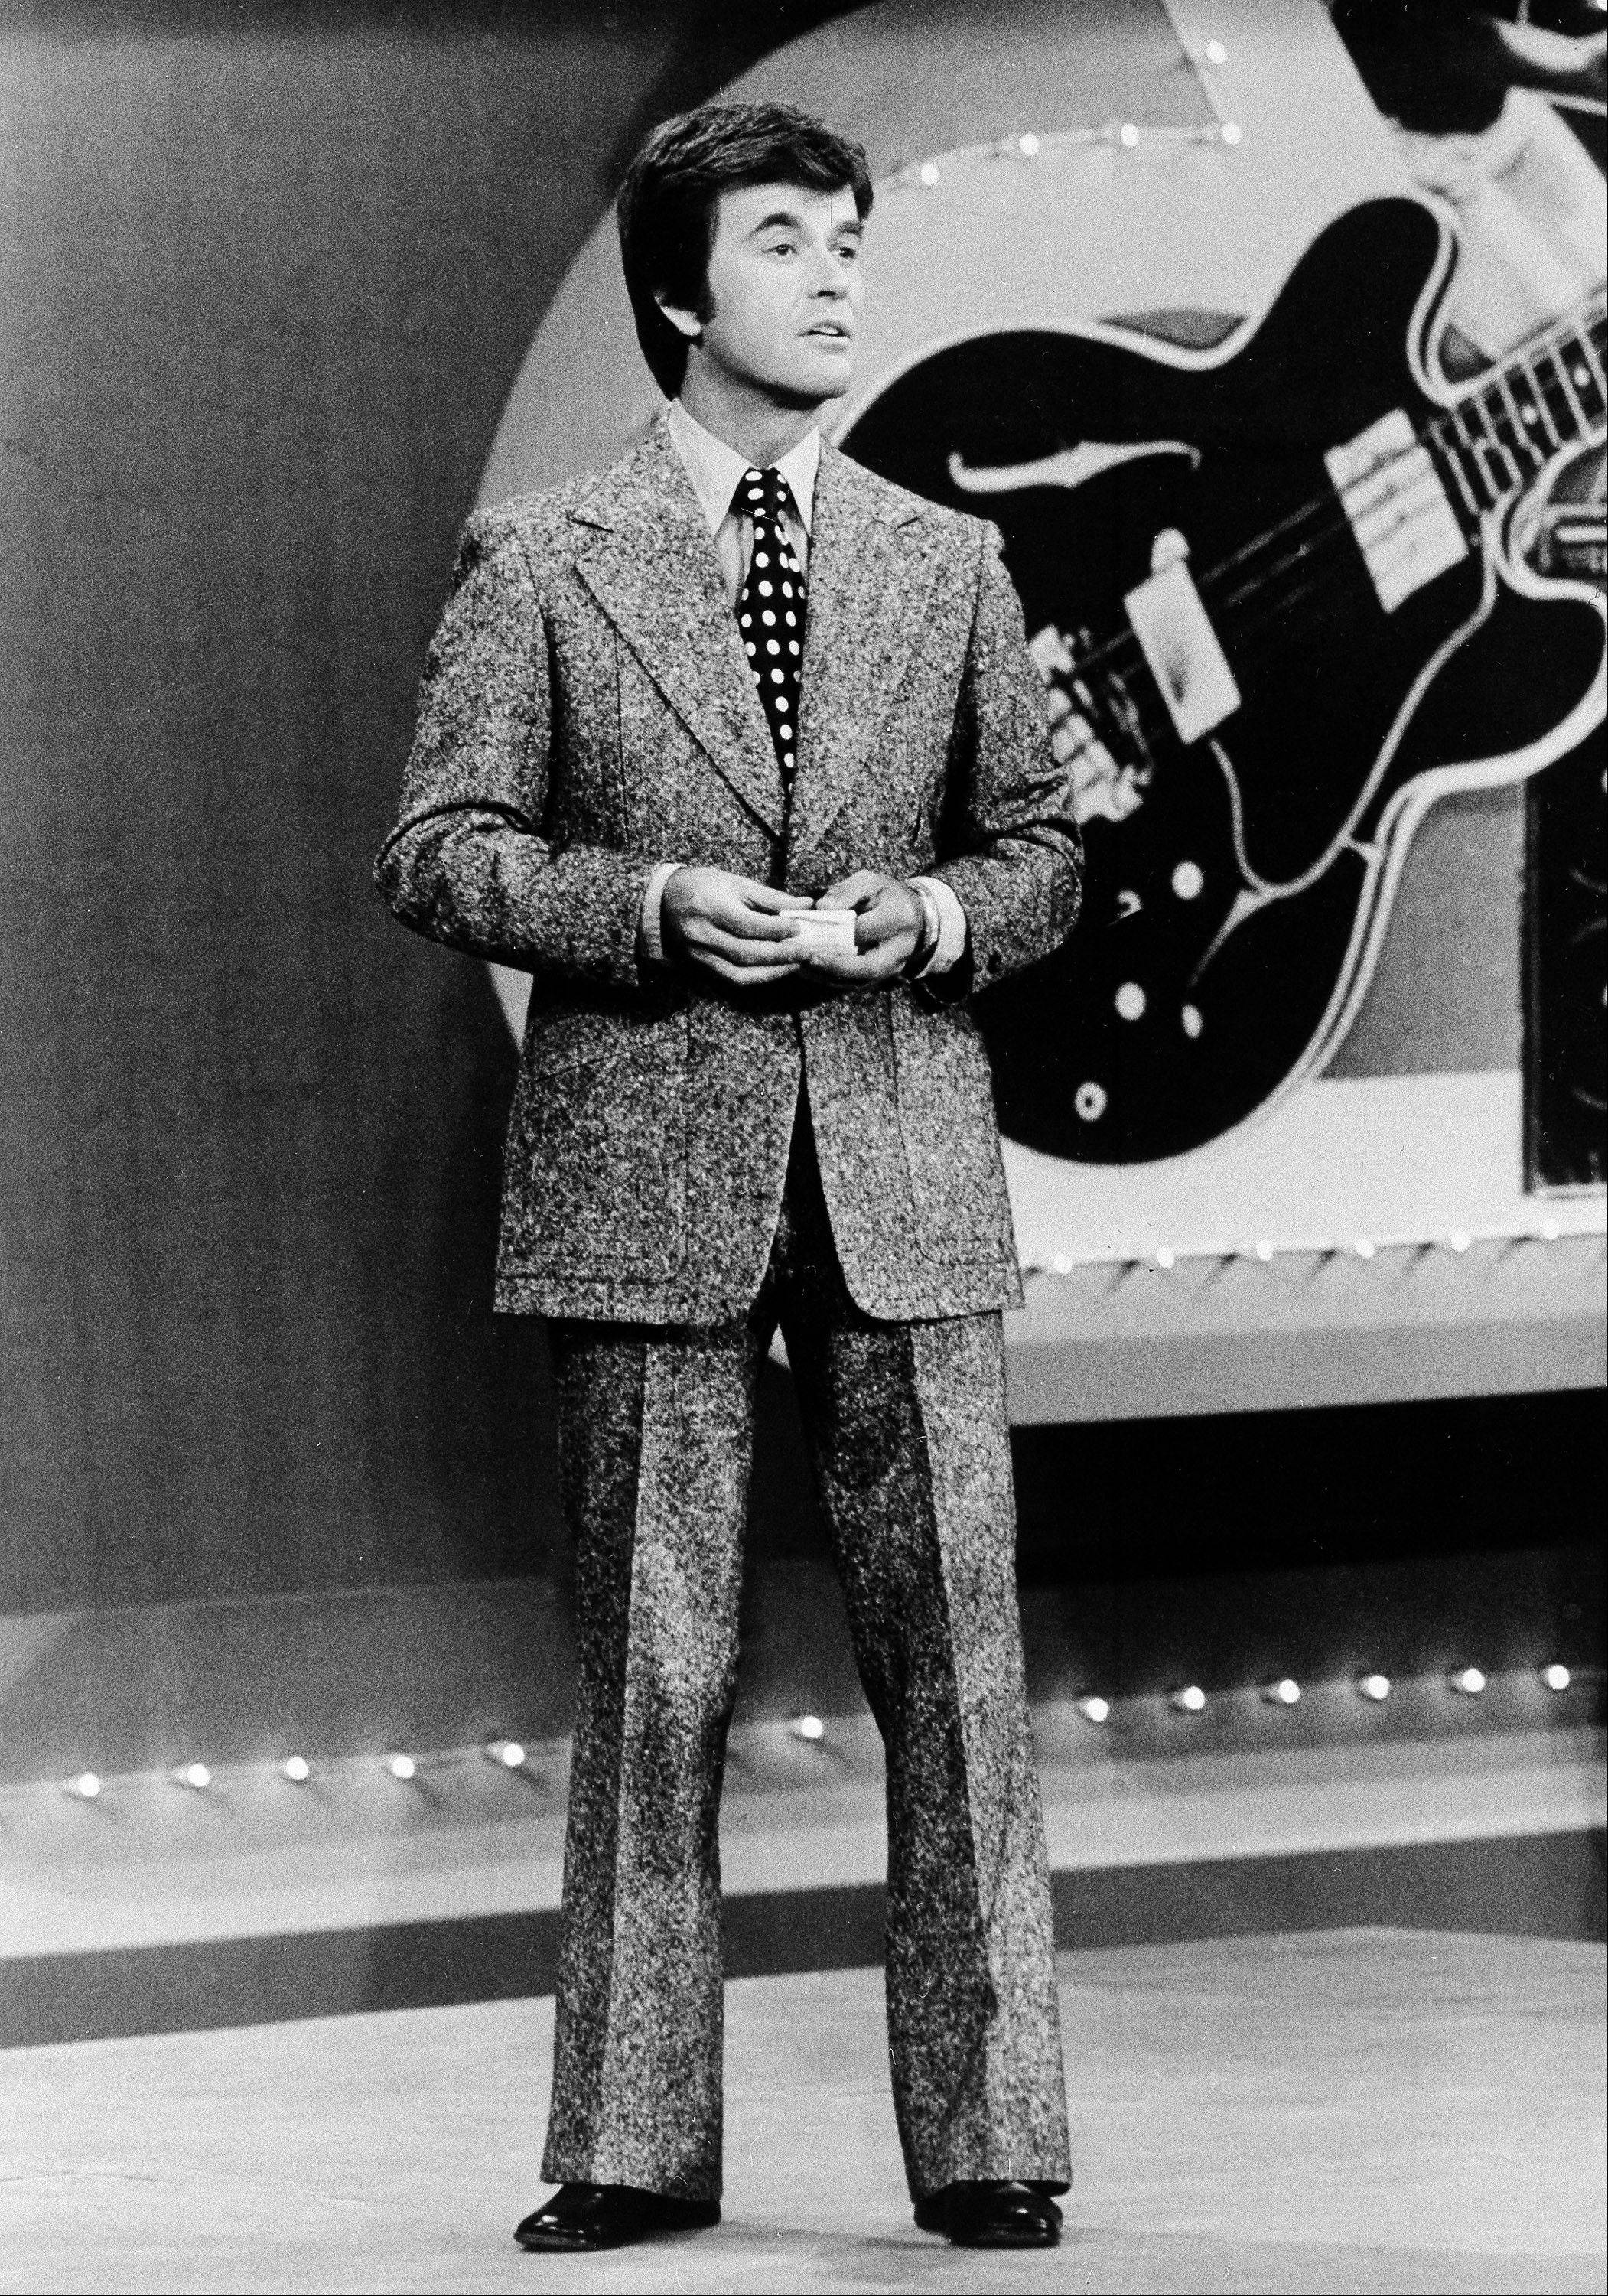 In this 1973 file photo released by ABC, Dick Clark presents the Rock and Roll Year- a musical portrait of the 1950s and 1960s on the ABC television network in a series of five specials.